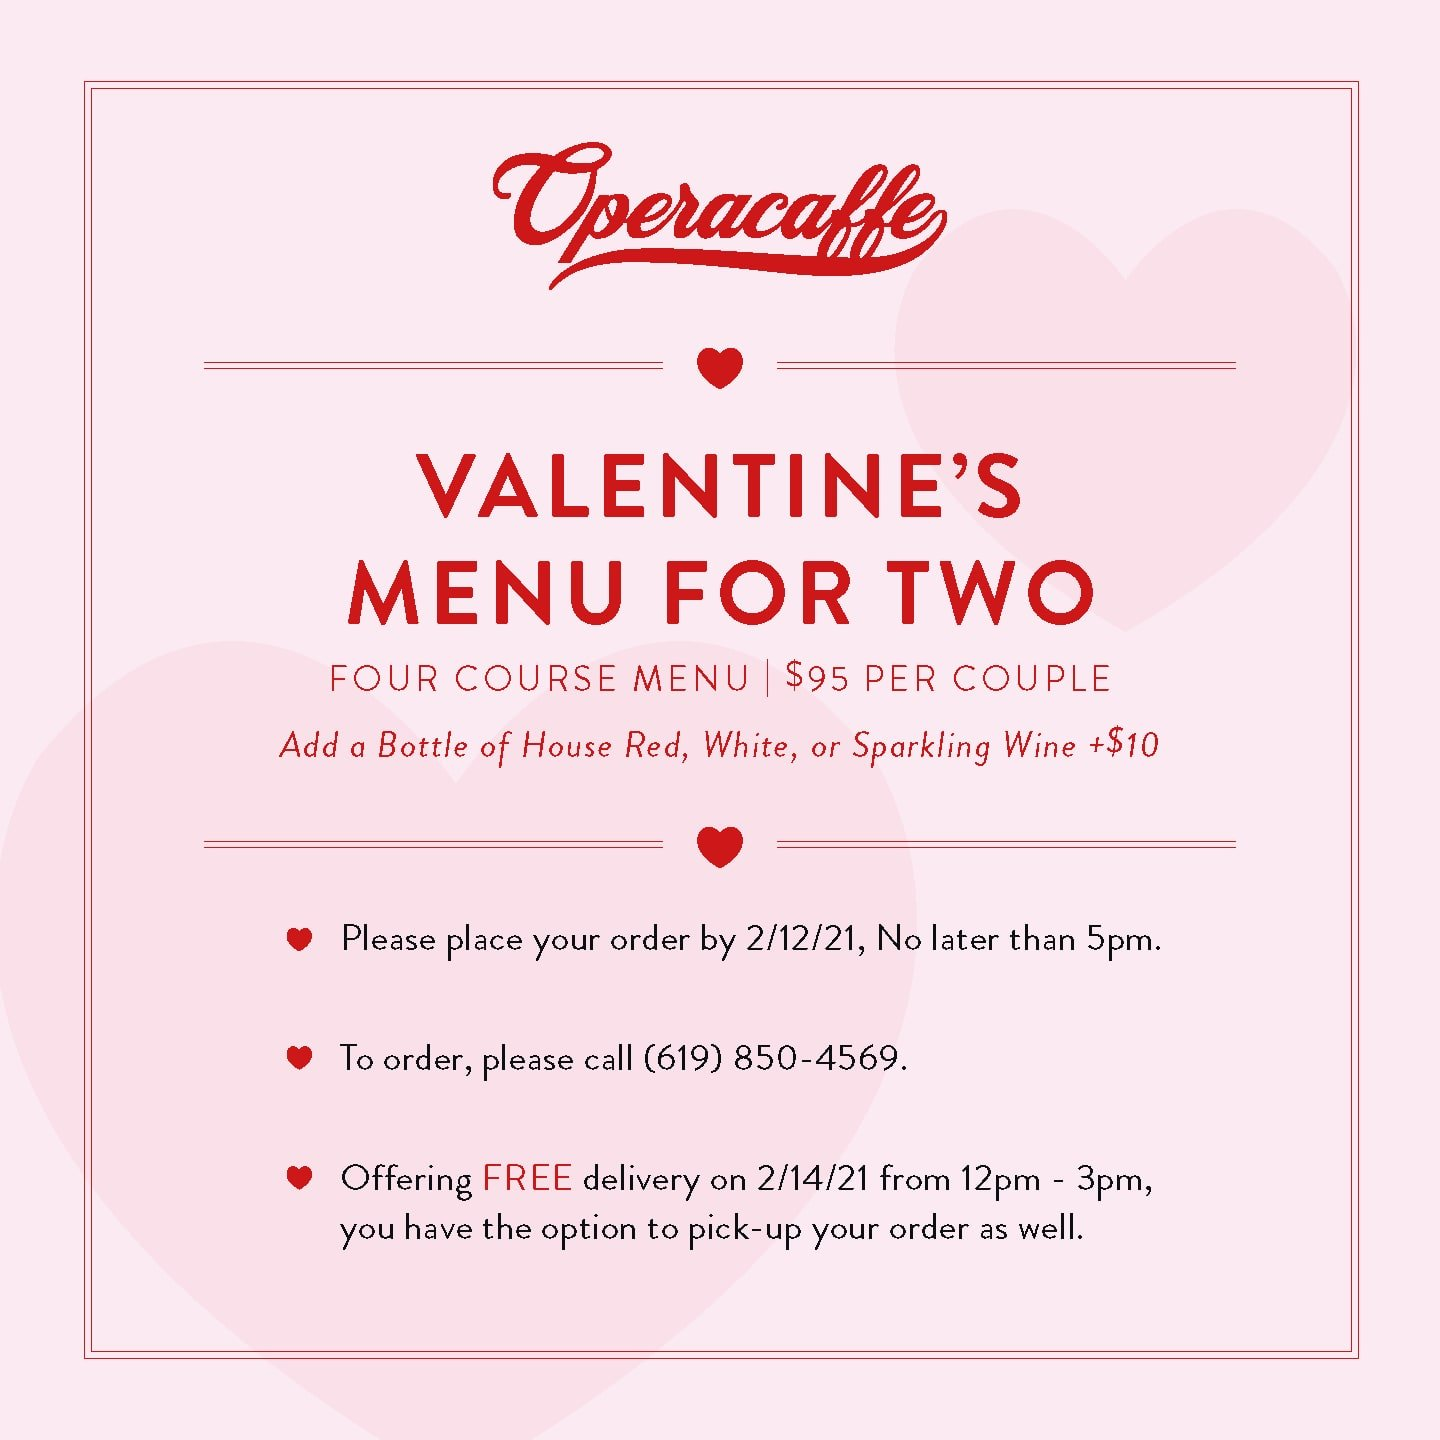 Operacaffe Valentine's Day Menu For Two